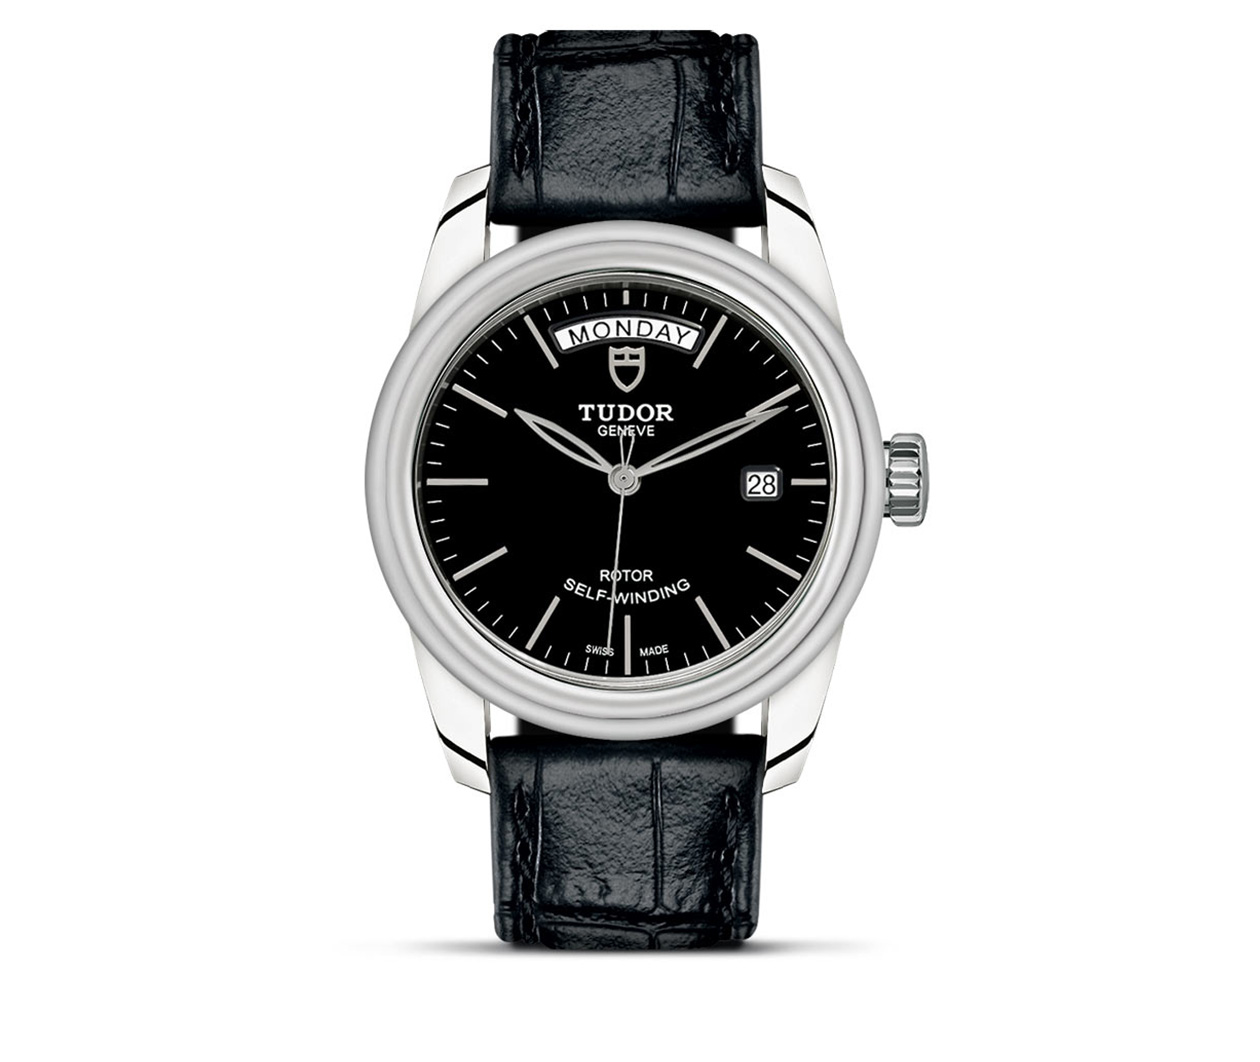 TUDOR Glamour Date Day M56000 0023 FINAL